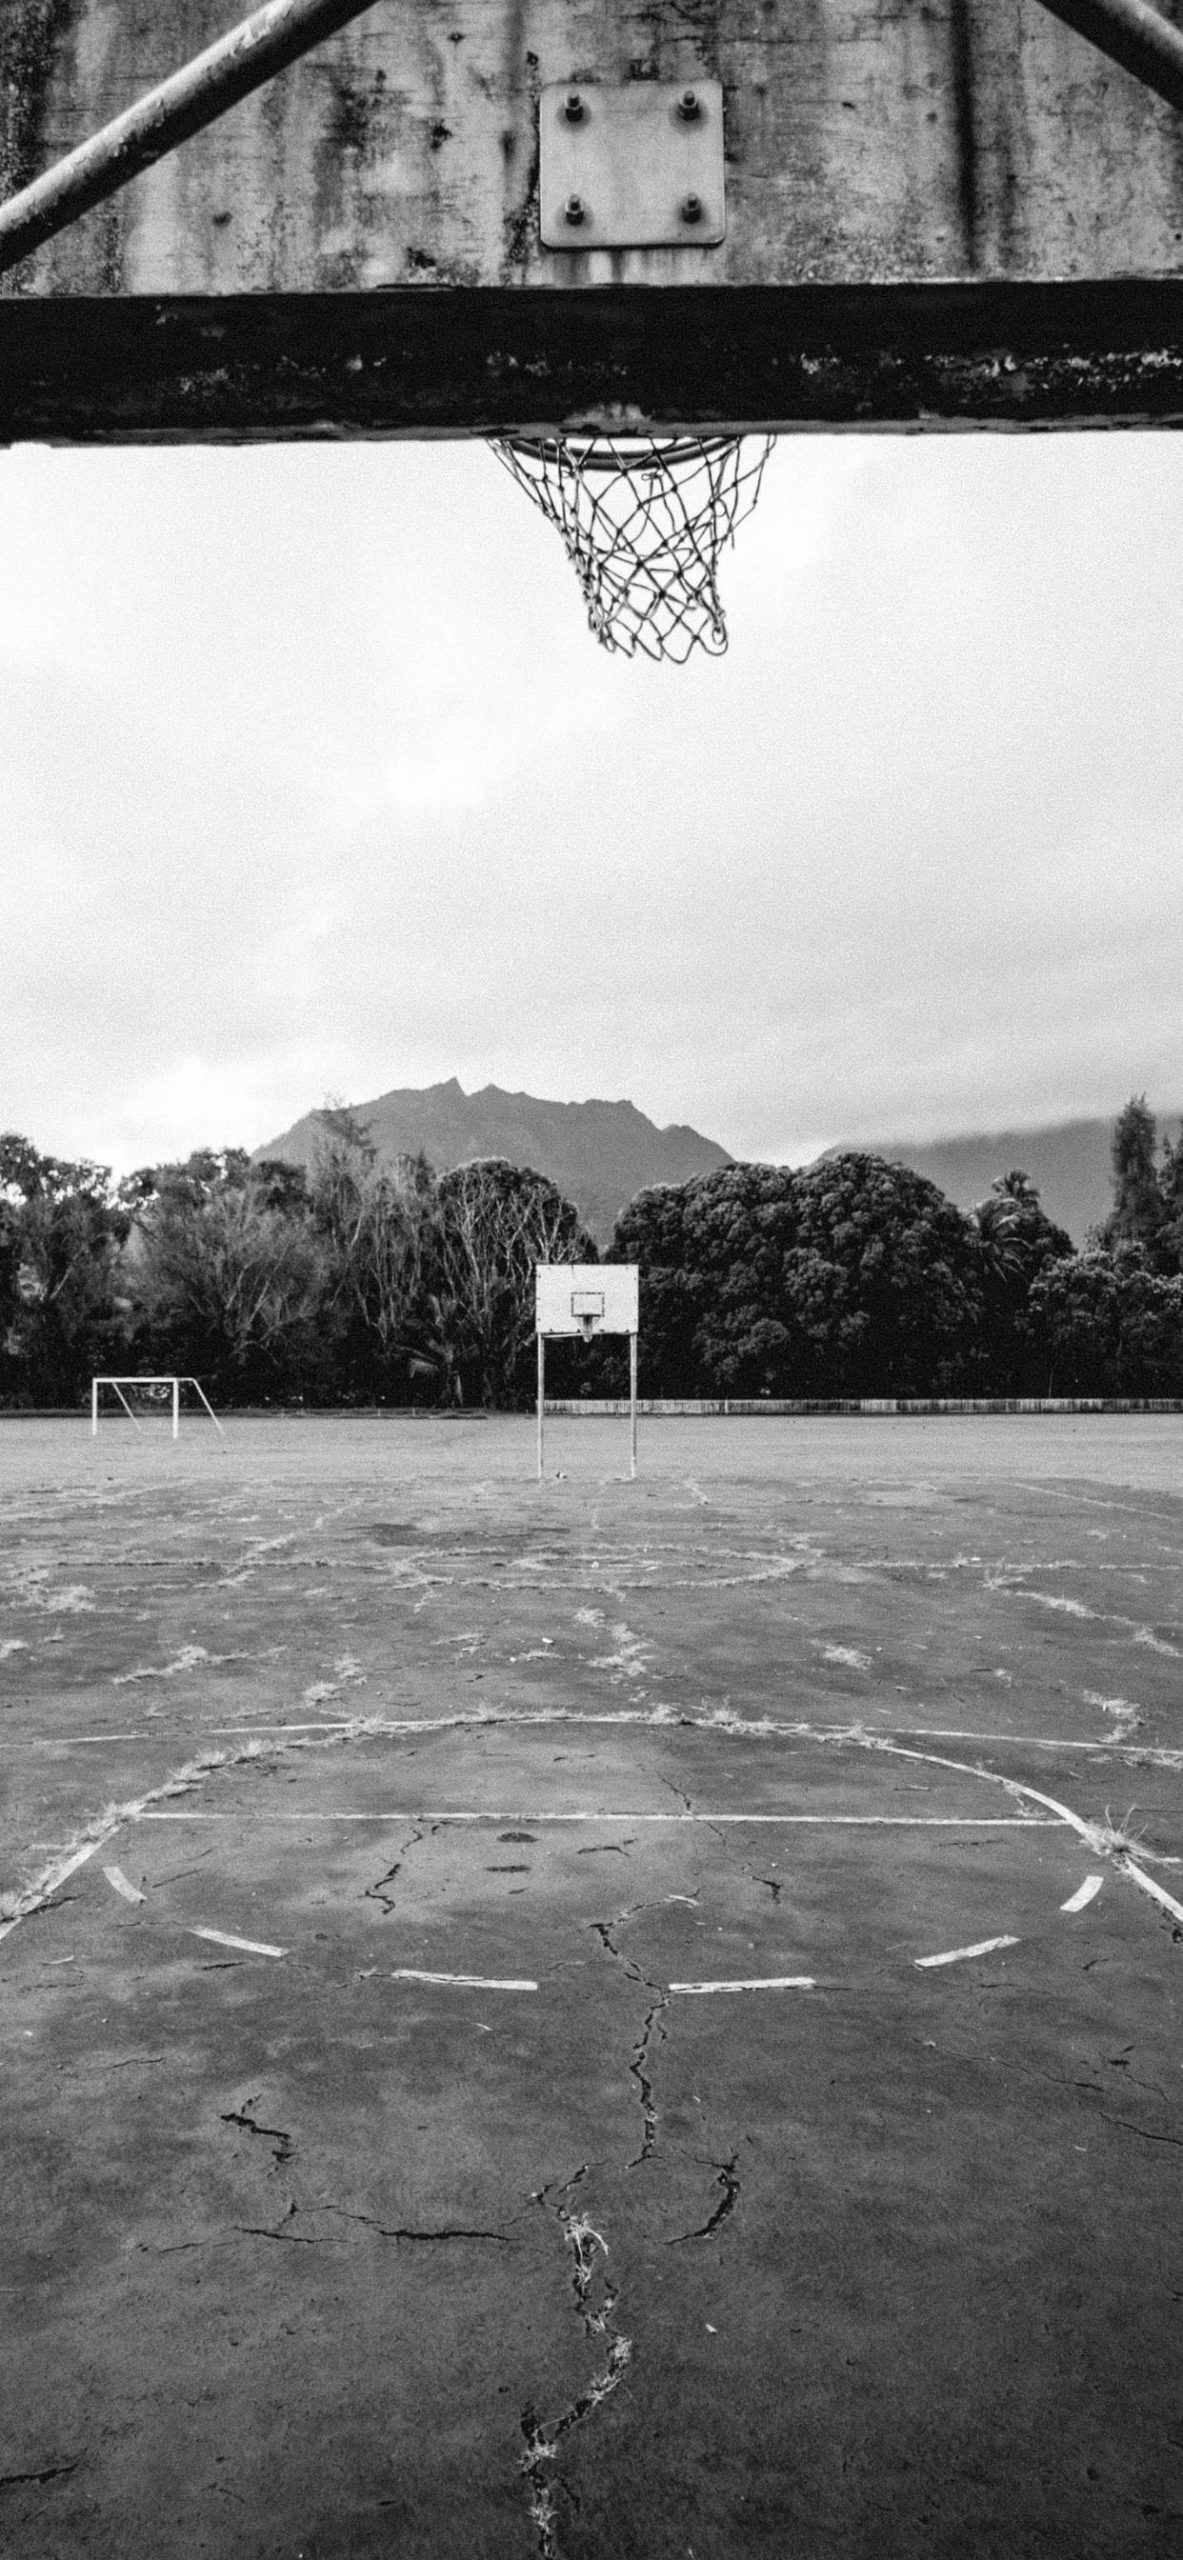 iPhone wallpapers basketball court hawaii scaled Basketball